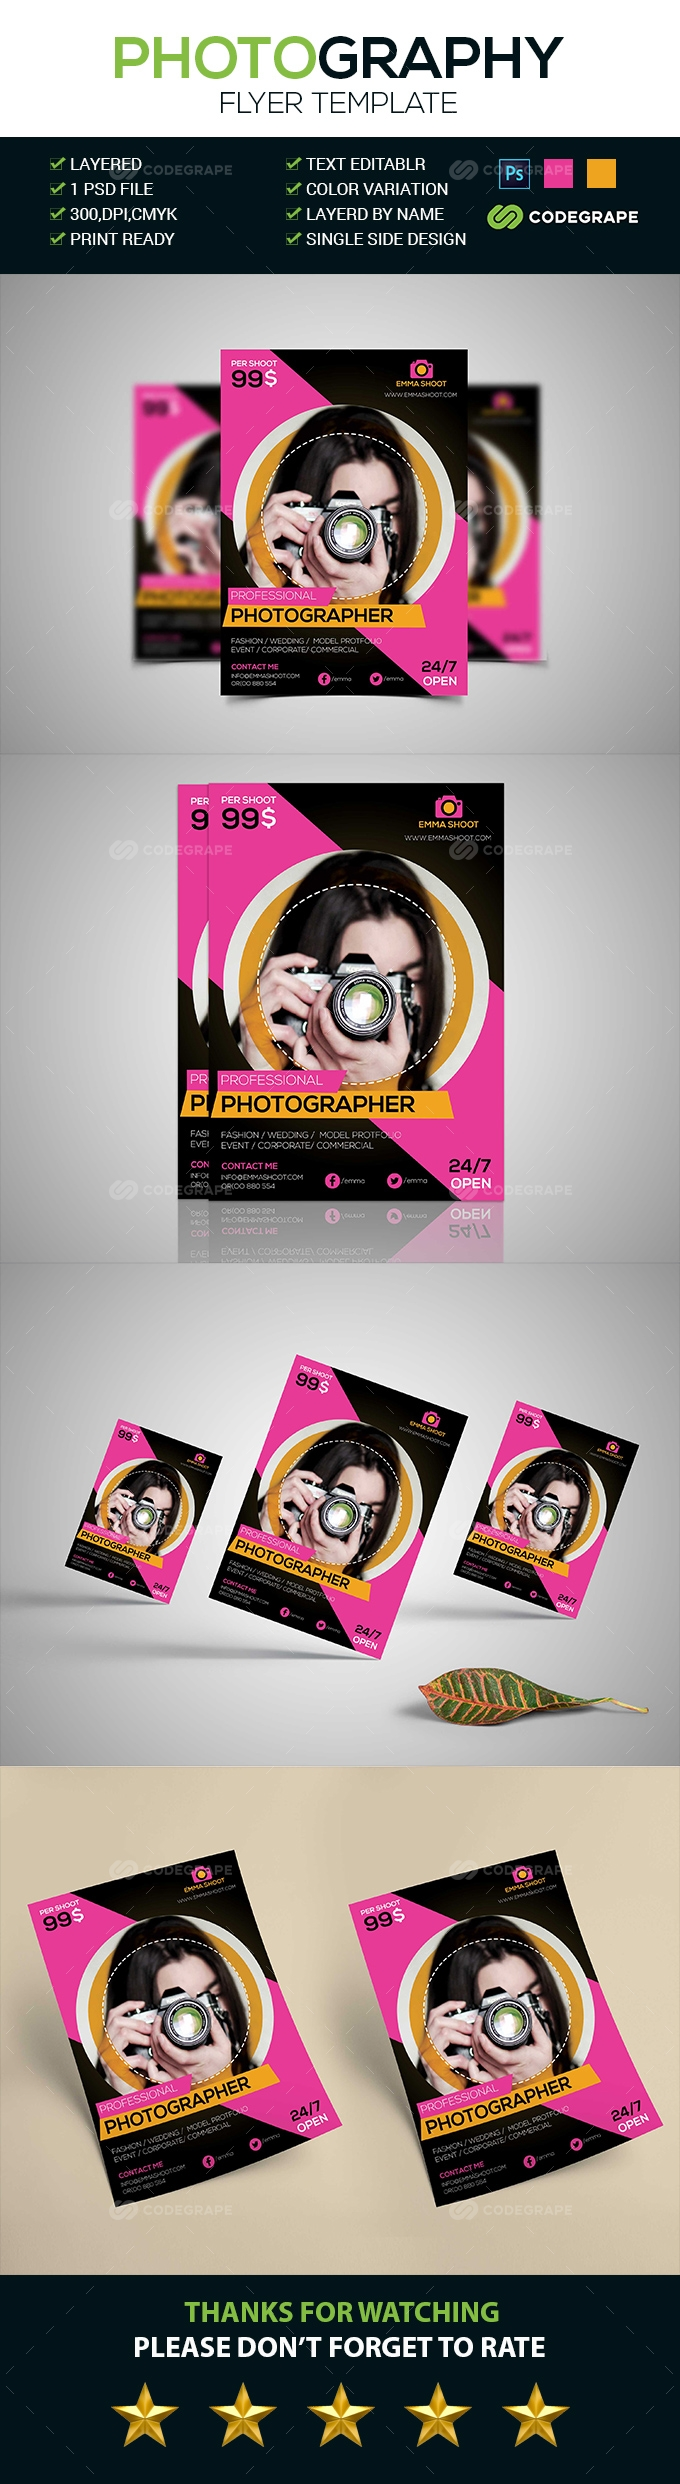 Amazing Photography Flyer